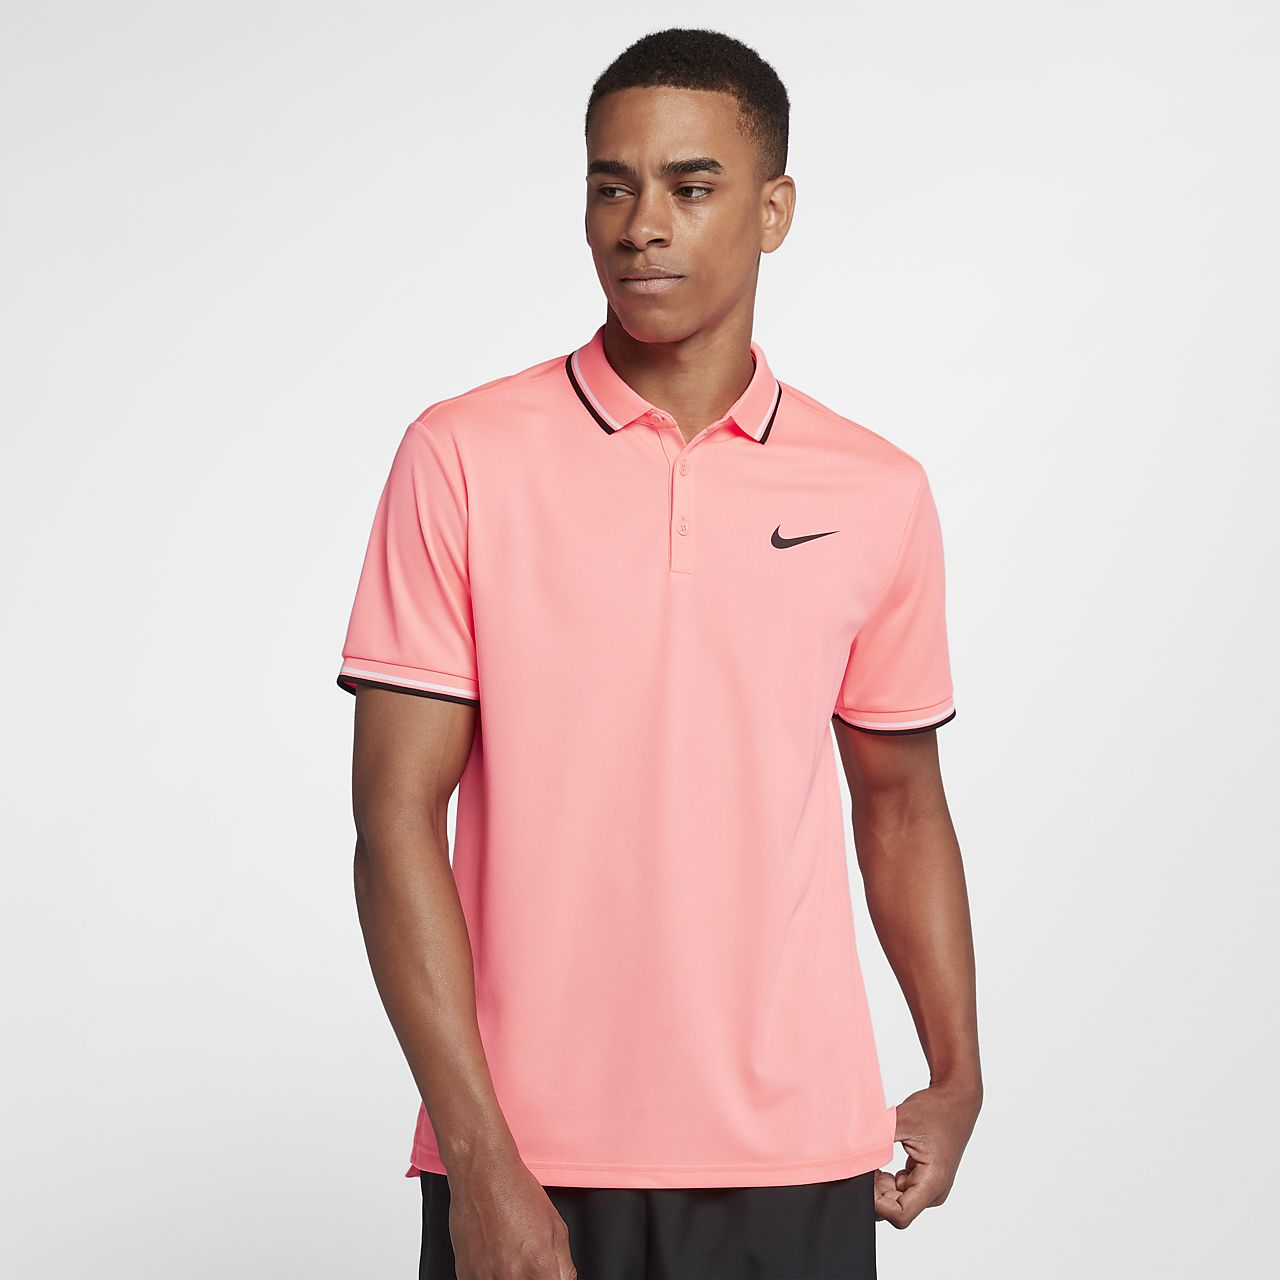 Low Resolution NikeCourt Men's Tennis Polo NikeCourt Men's Tennis Polo